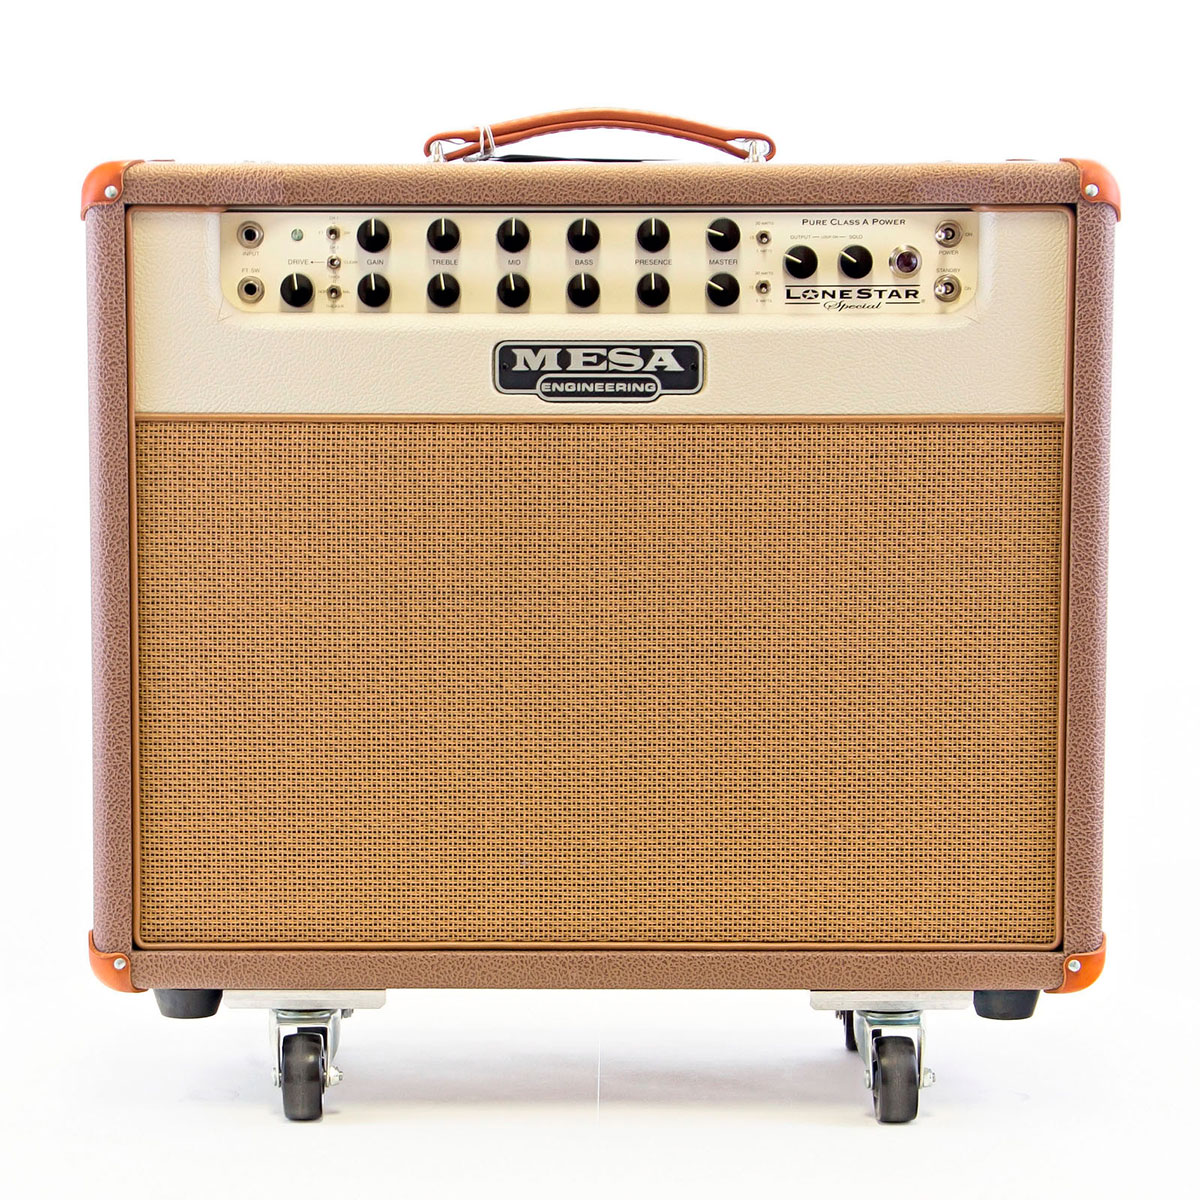 Mesa boogie lone star 1x12 special combo amplificador for Amplificadores mesa boogie